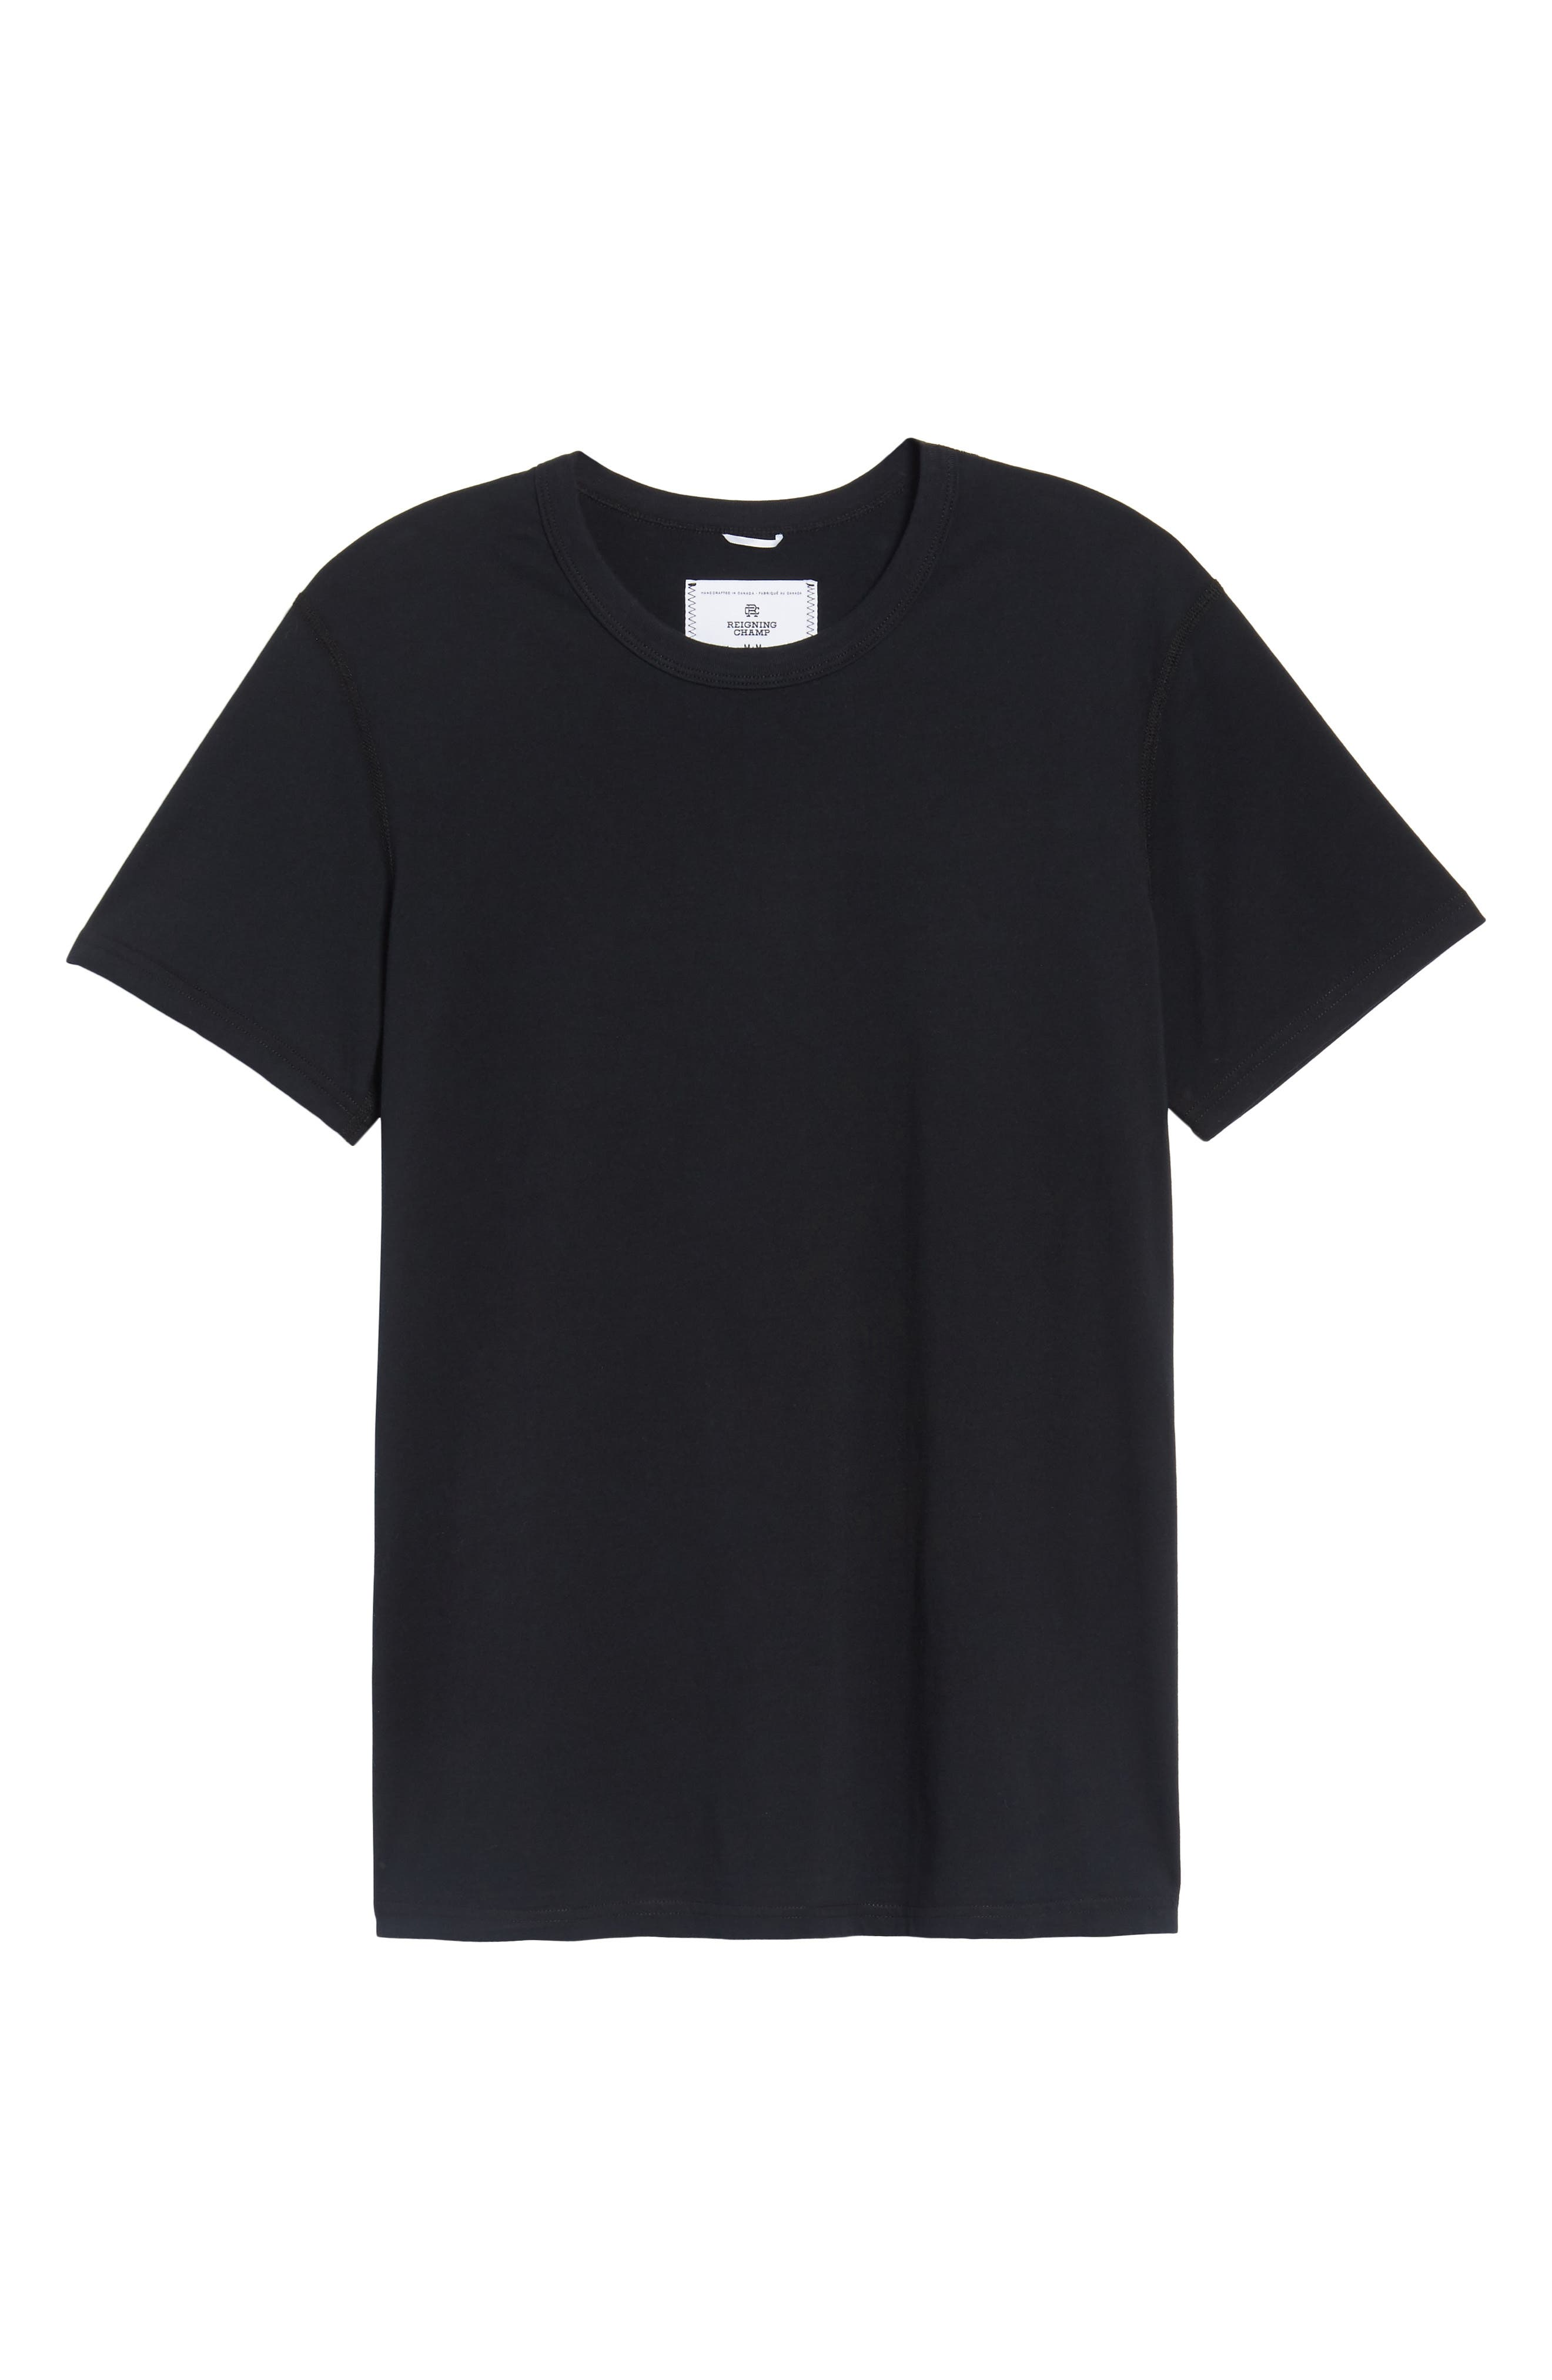 REIGNING CHAMP Short Sleeve Crewneck T-Shirt, Main, color, BLACK